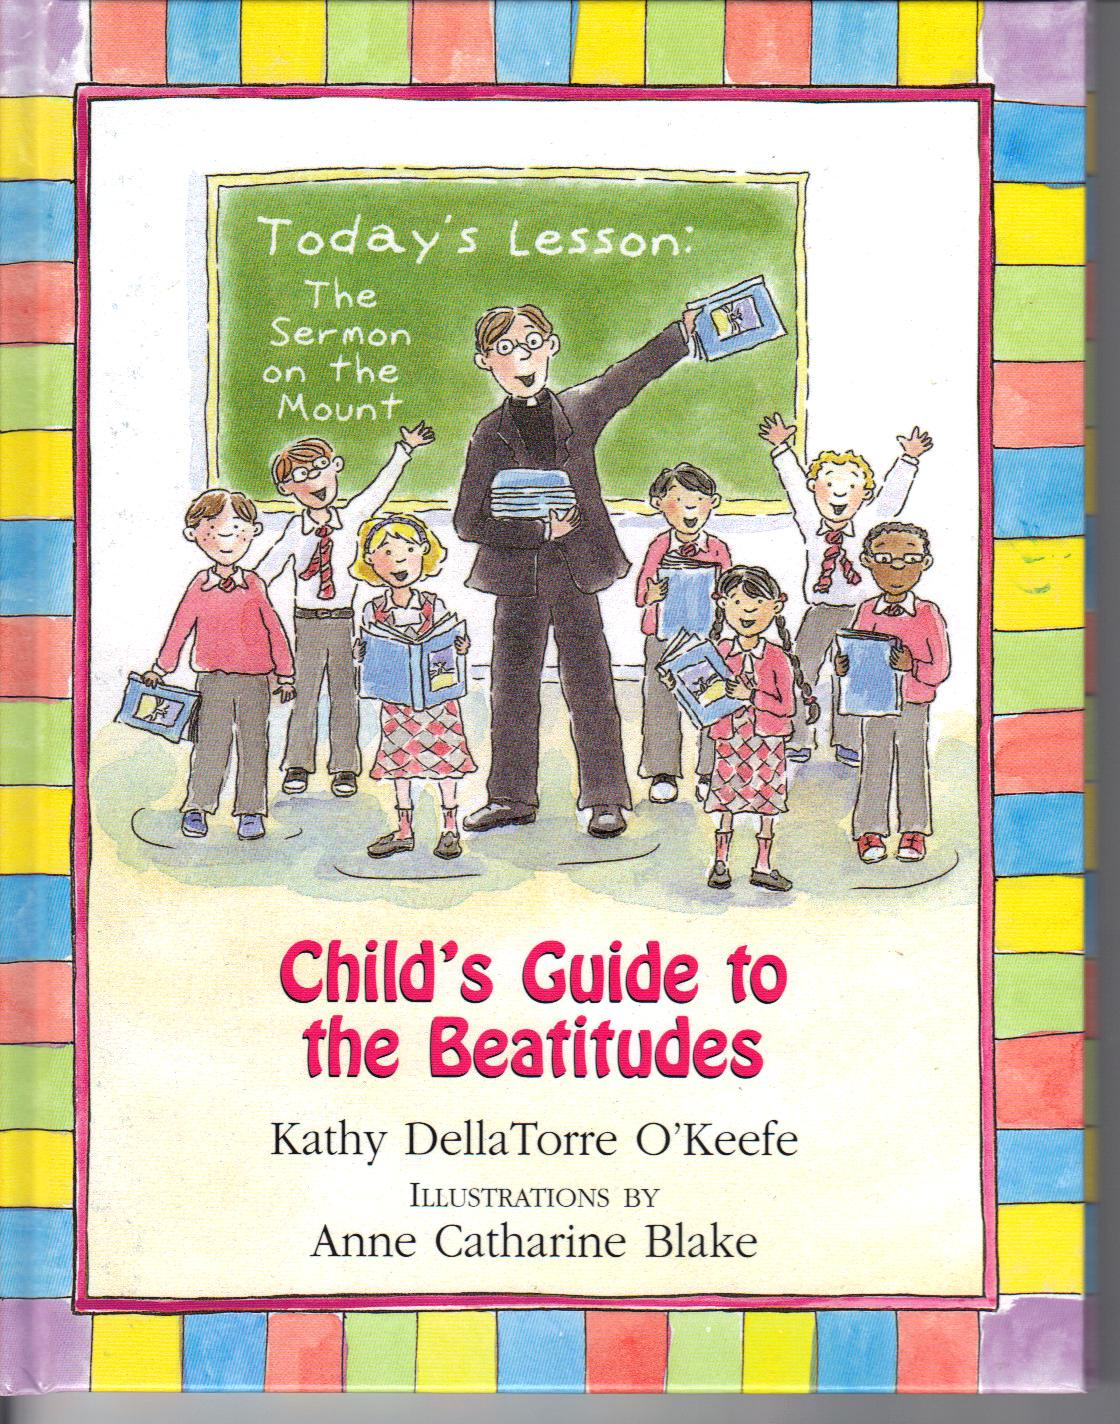 Child's Guide to the Beatitudes by Kathy O'keefe 108-9780809167562